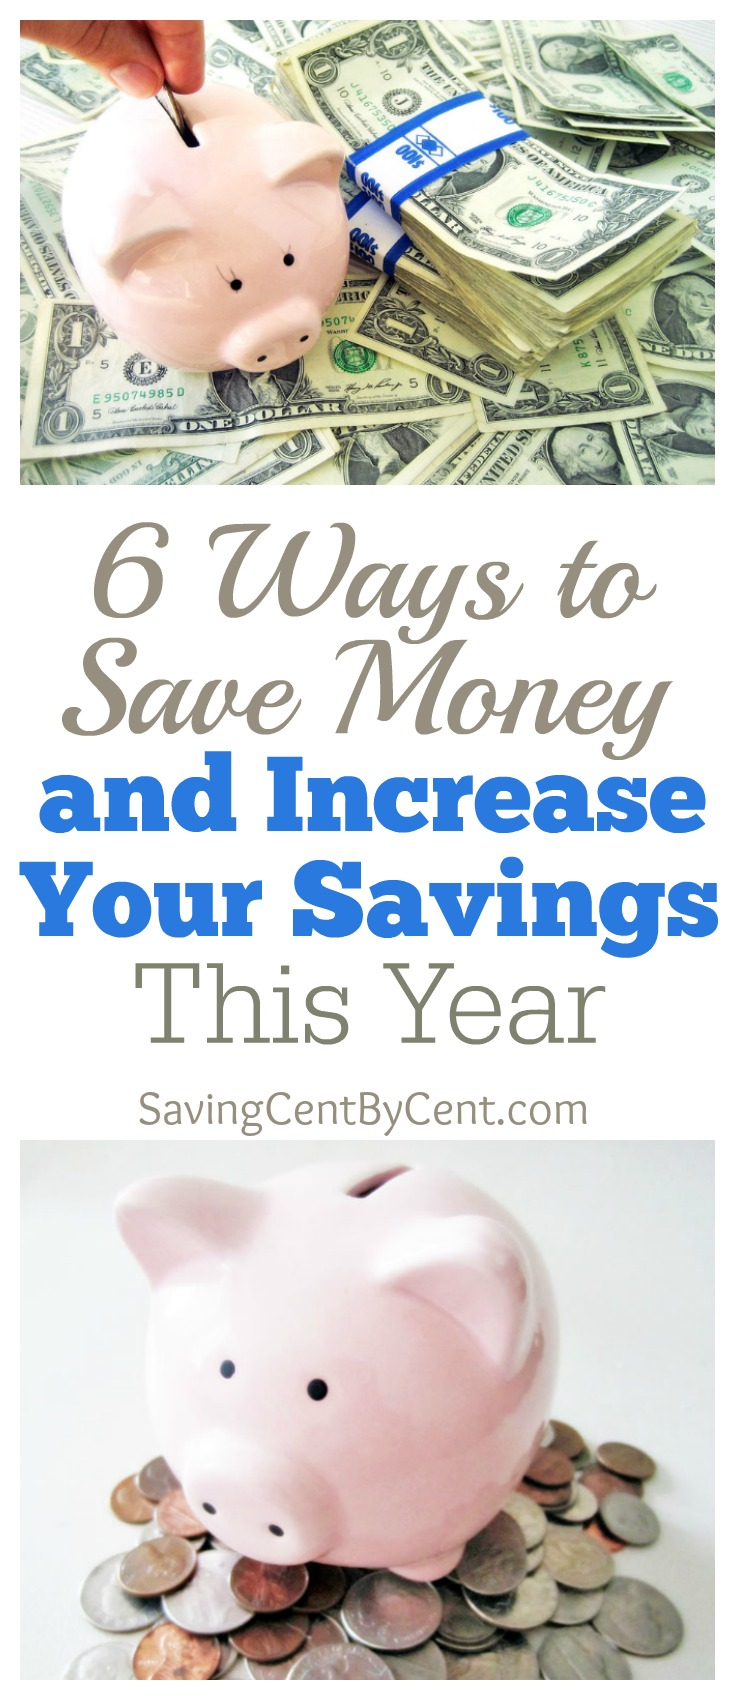 6 ways to save money and increase savings this year